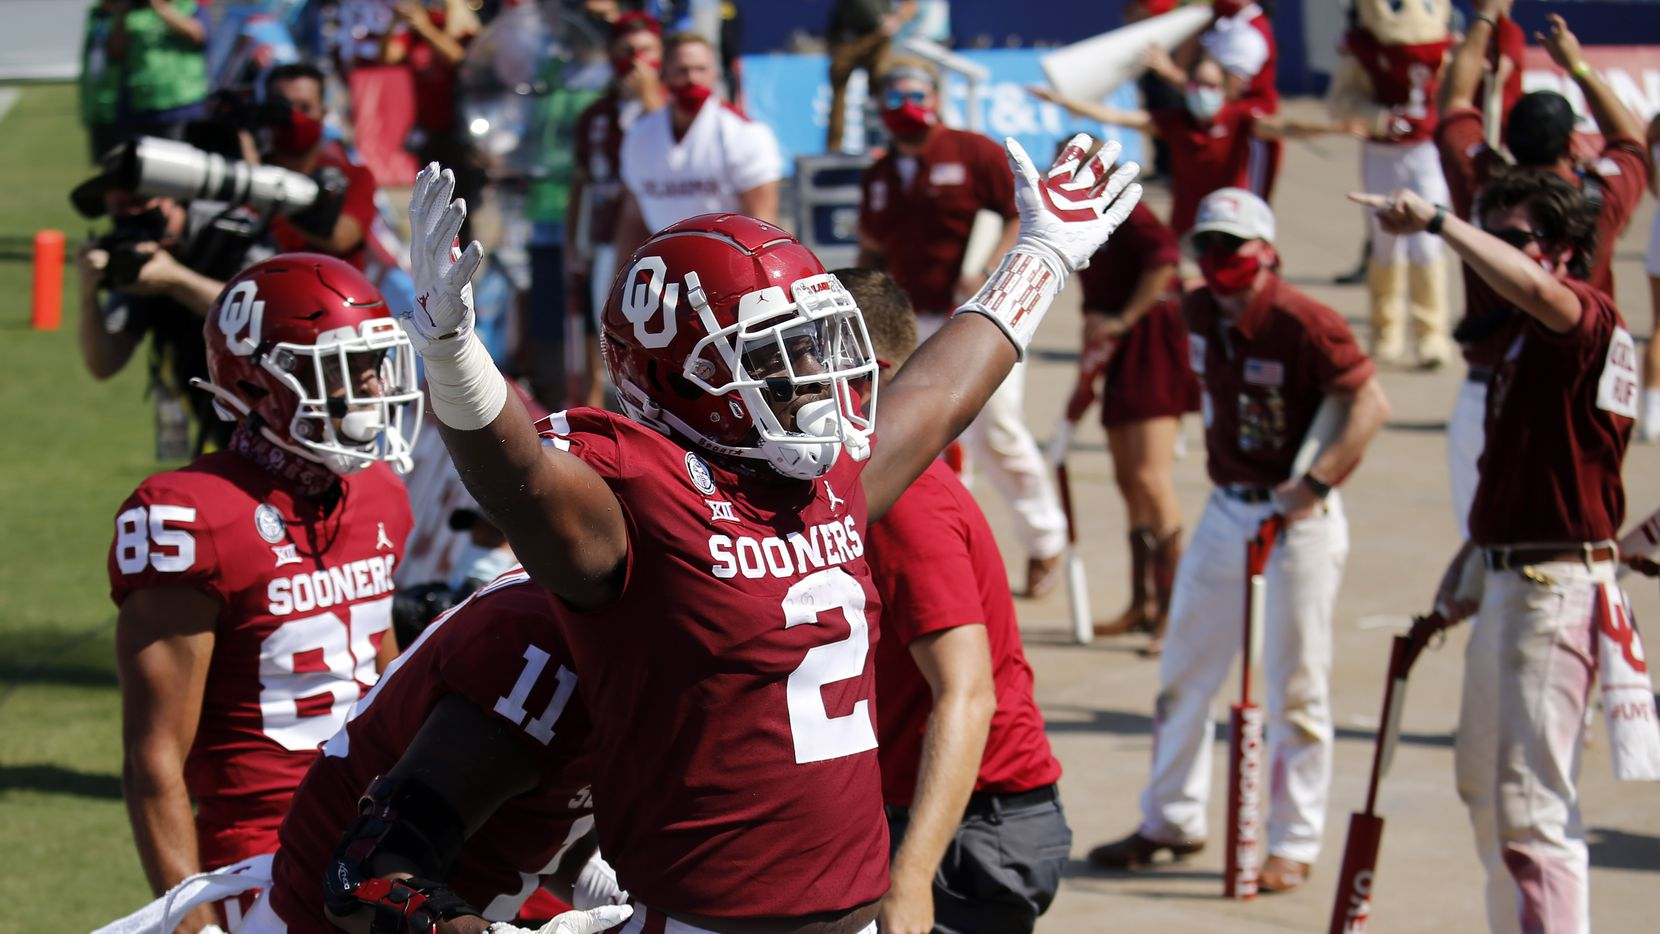 The Oklahoma Sooners defense celebrates Oklahoma Sooners linebacker David Ugwoegbu's (2) second quarter blocked punt in the Red River Rivalry at the Cotton Bowl in Dallas, Saturday, October 10, 2020. Oklahoma won in quadruple overtime, 53-45.